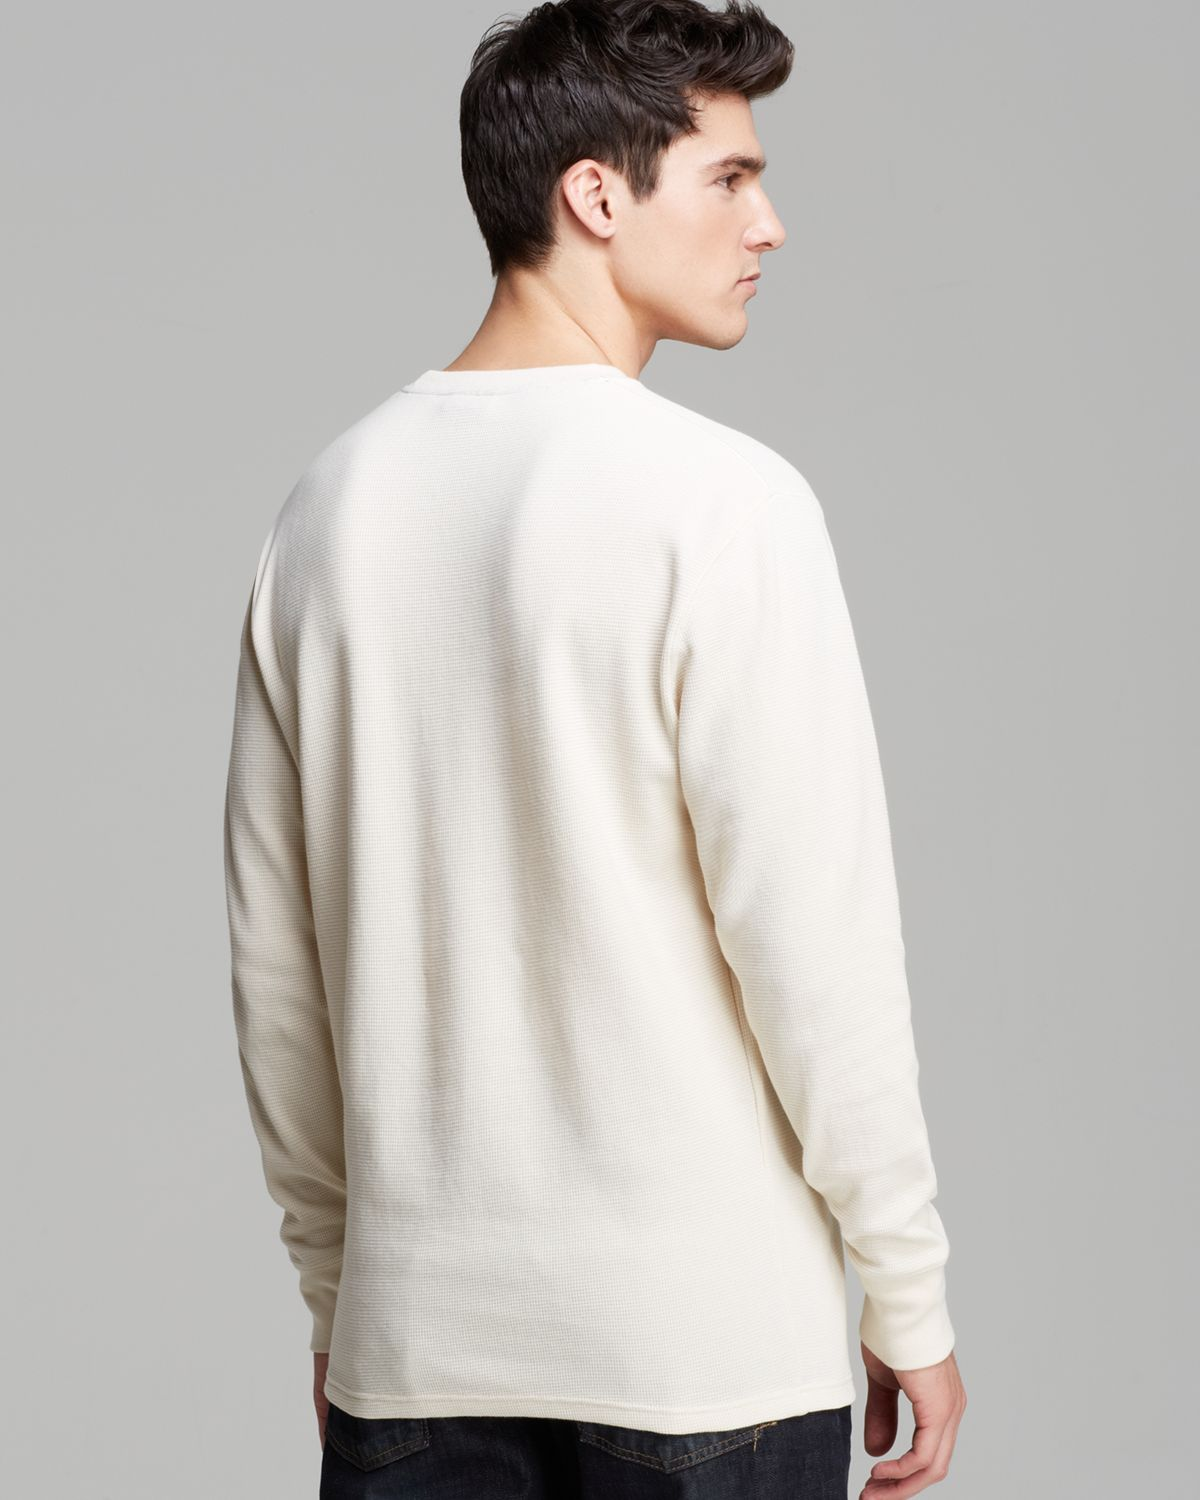 Polo ralph lauren Long Sleeve Crewneck Waffle Shirt in Natural for ...